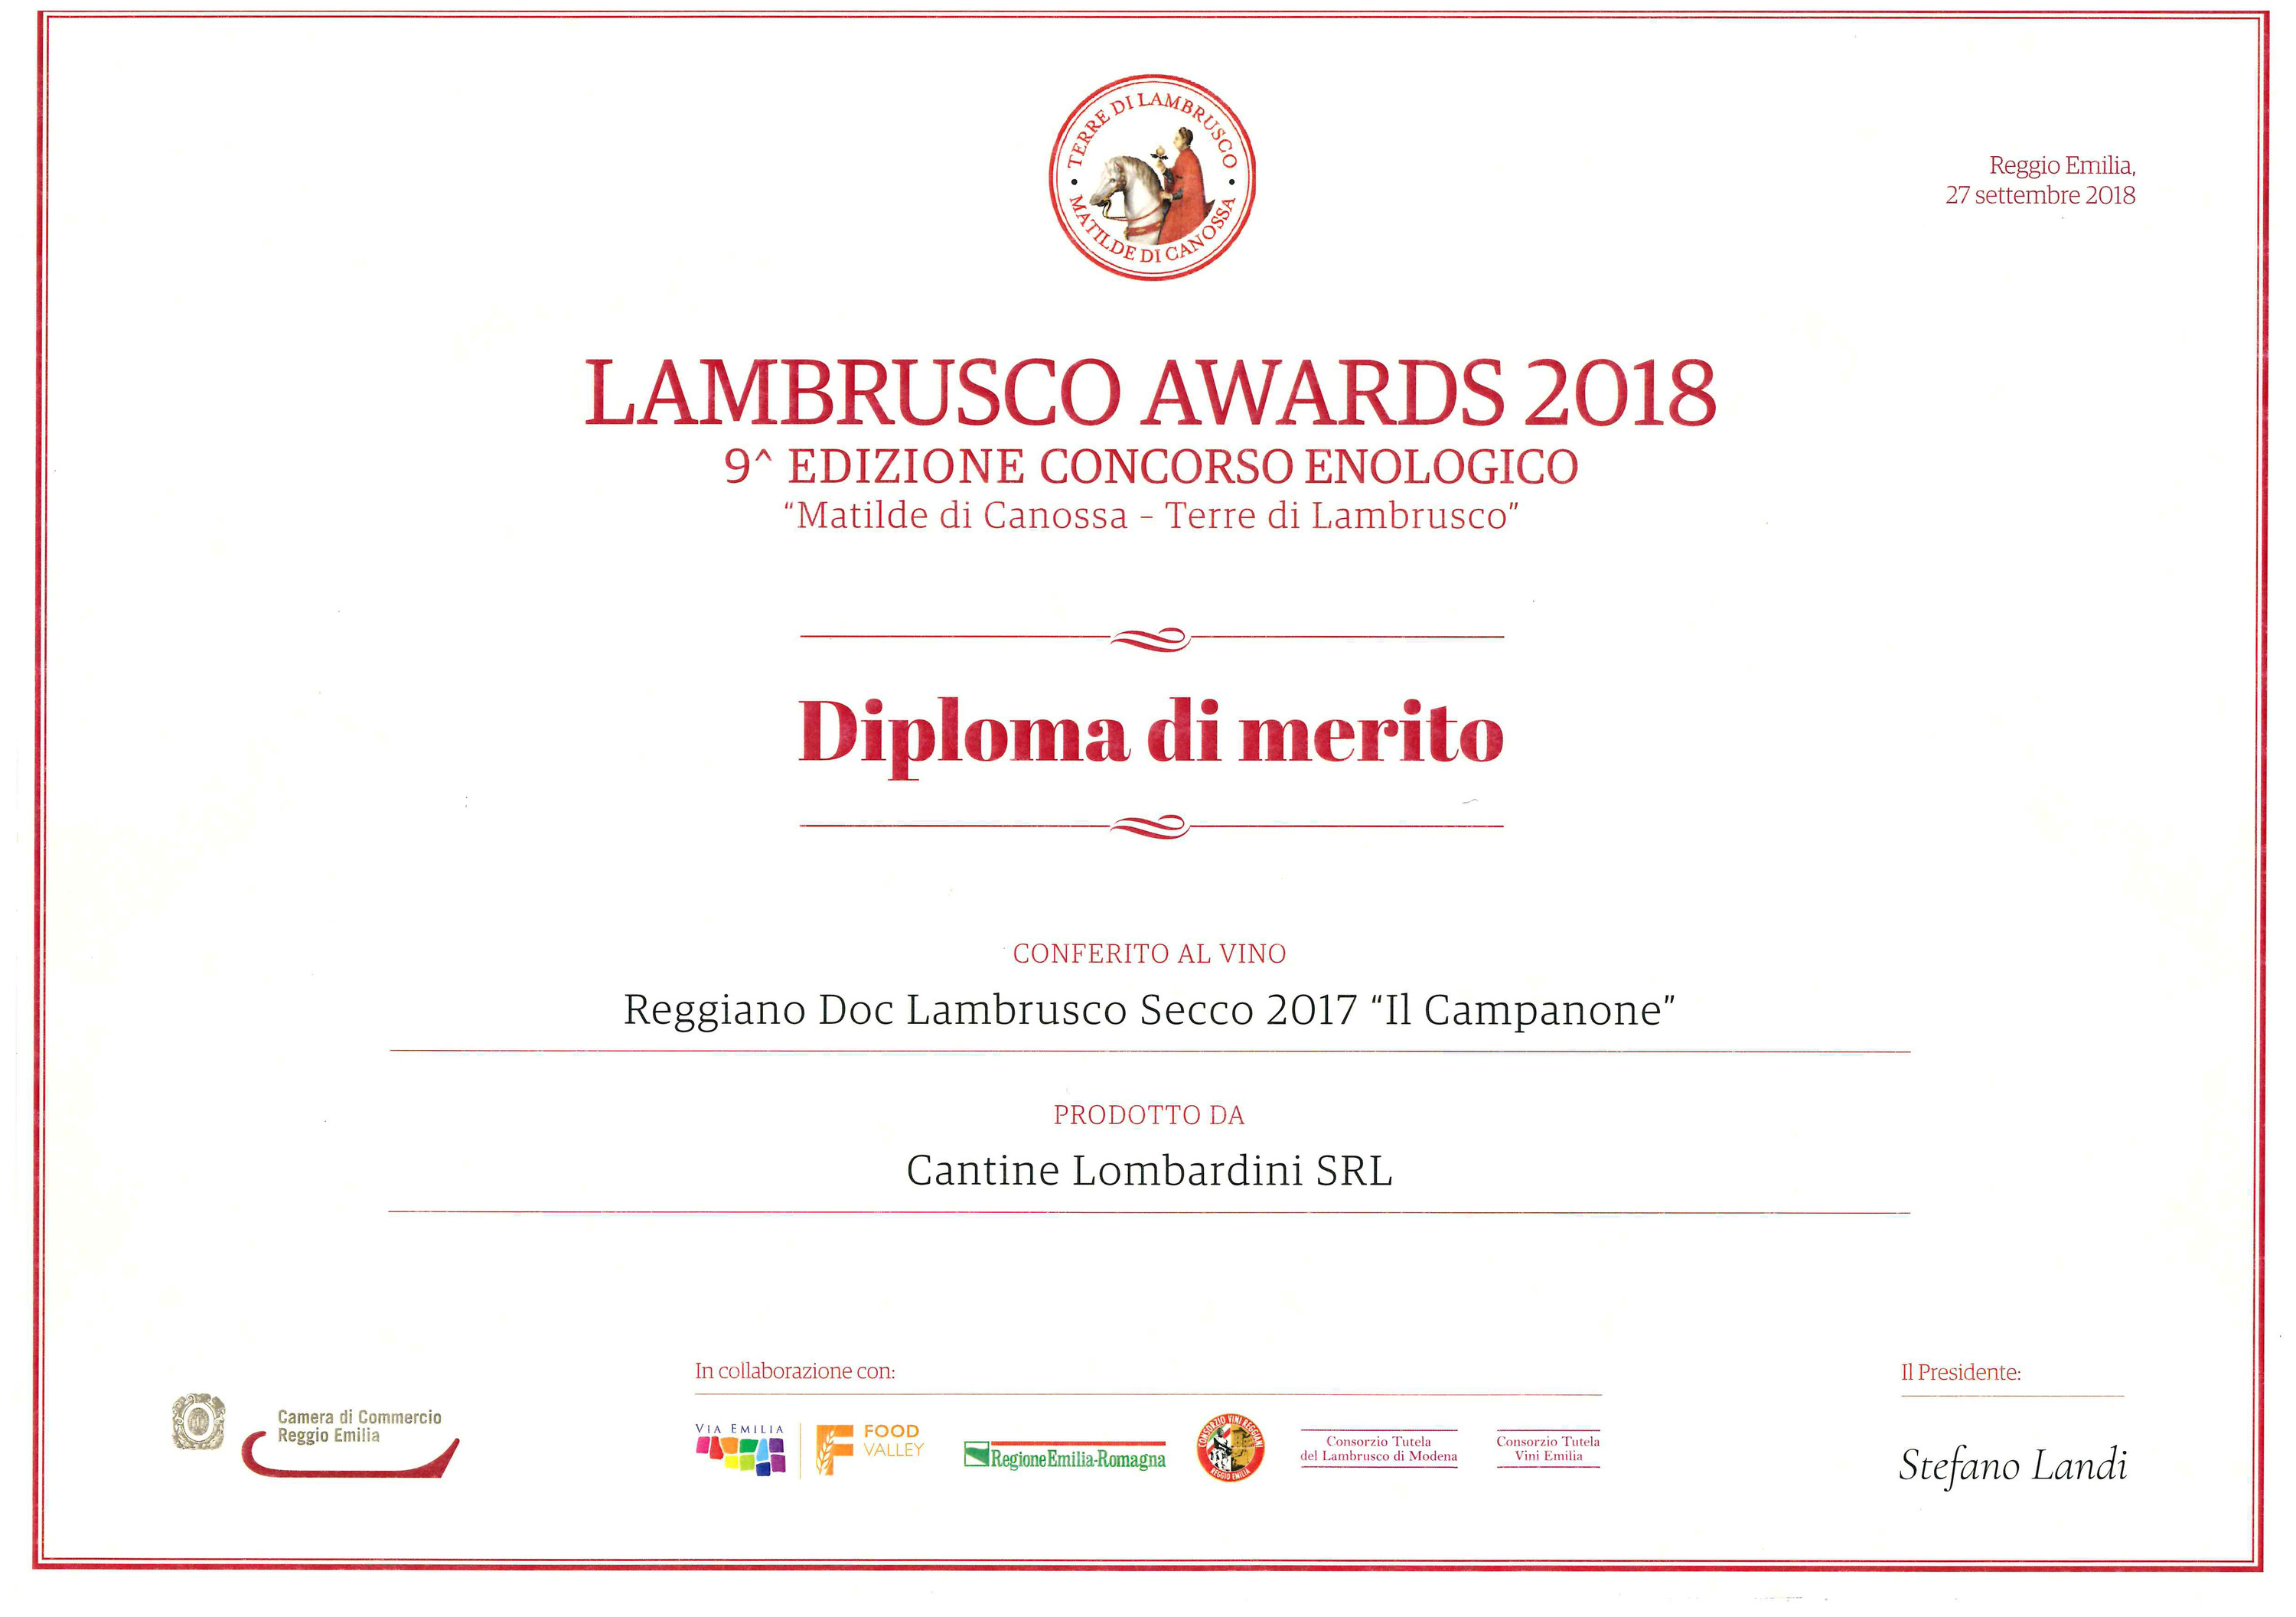 Lambrusco awards 2018_3.jpg